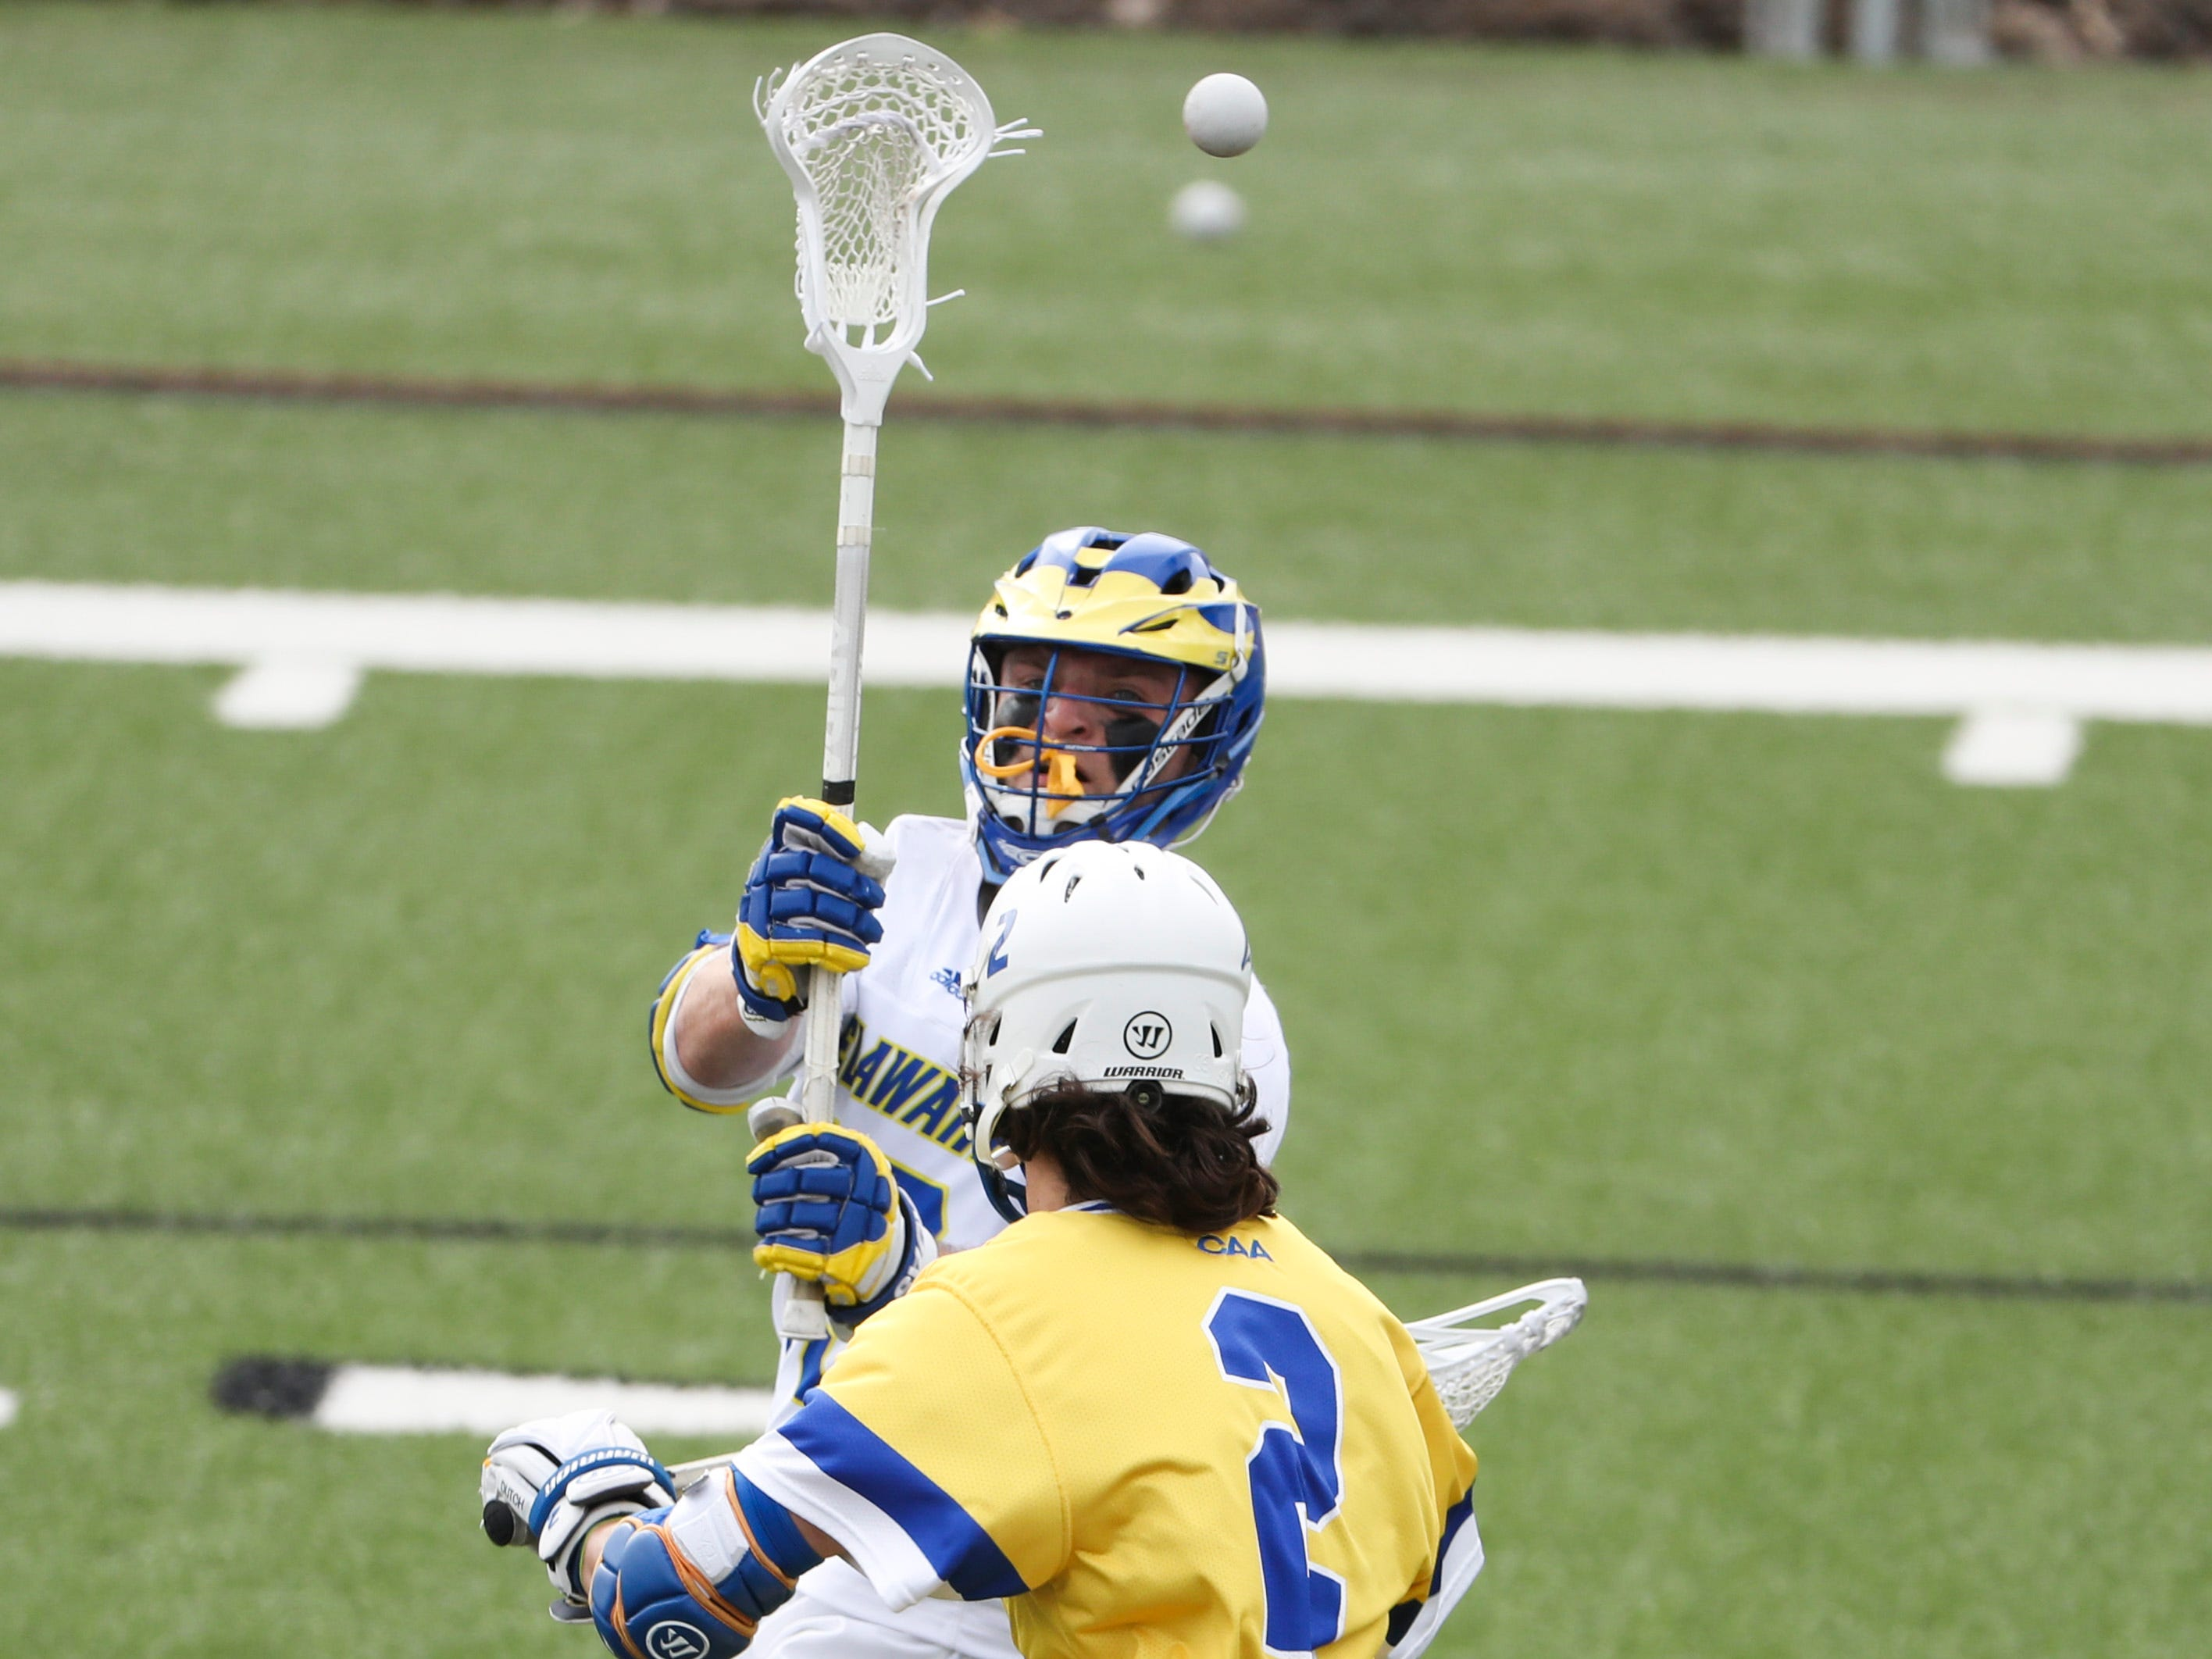 Delaware's Dean DiSimone passes over Hofstra's Corey Kale in the fourth period of Delaware's 13-7 win against rival Hofstra at home Saturday.